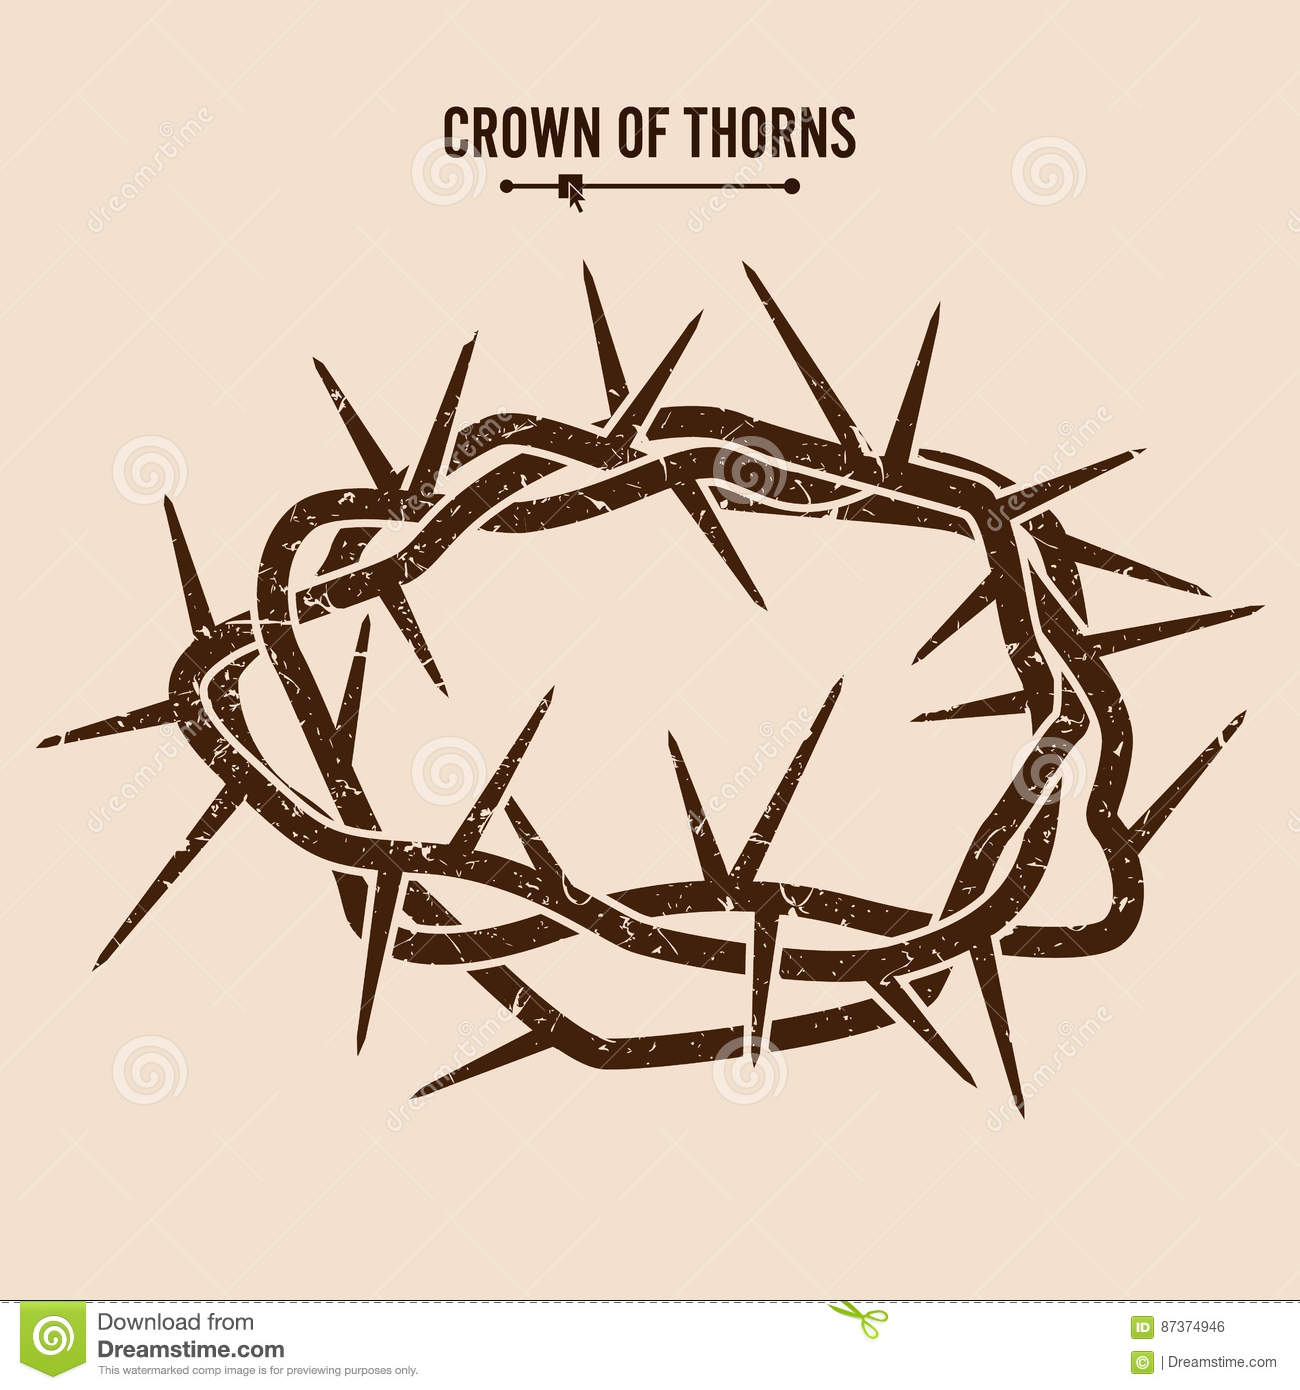 of thorns illustration - photo #3